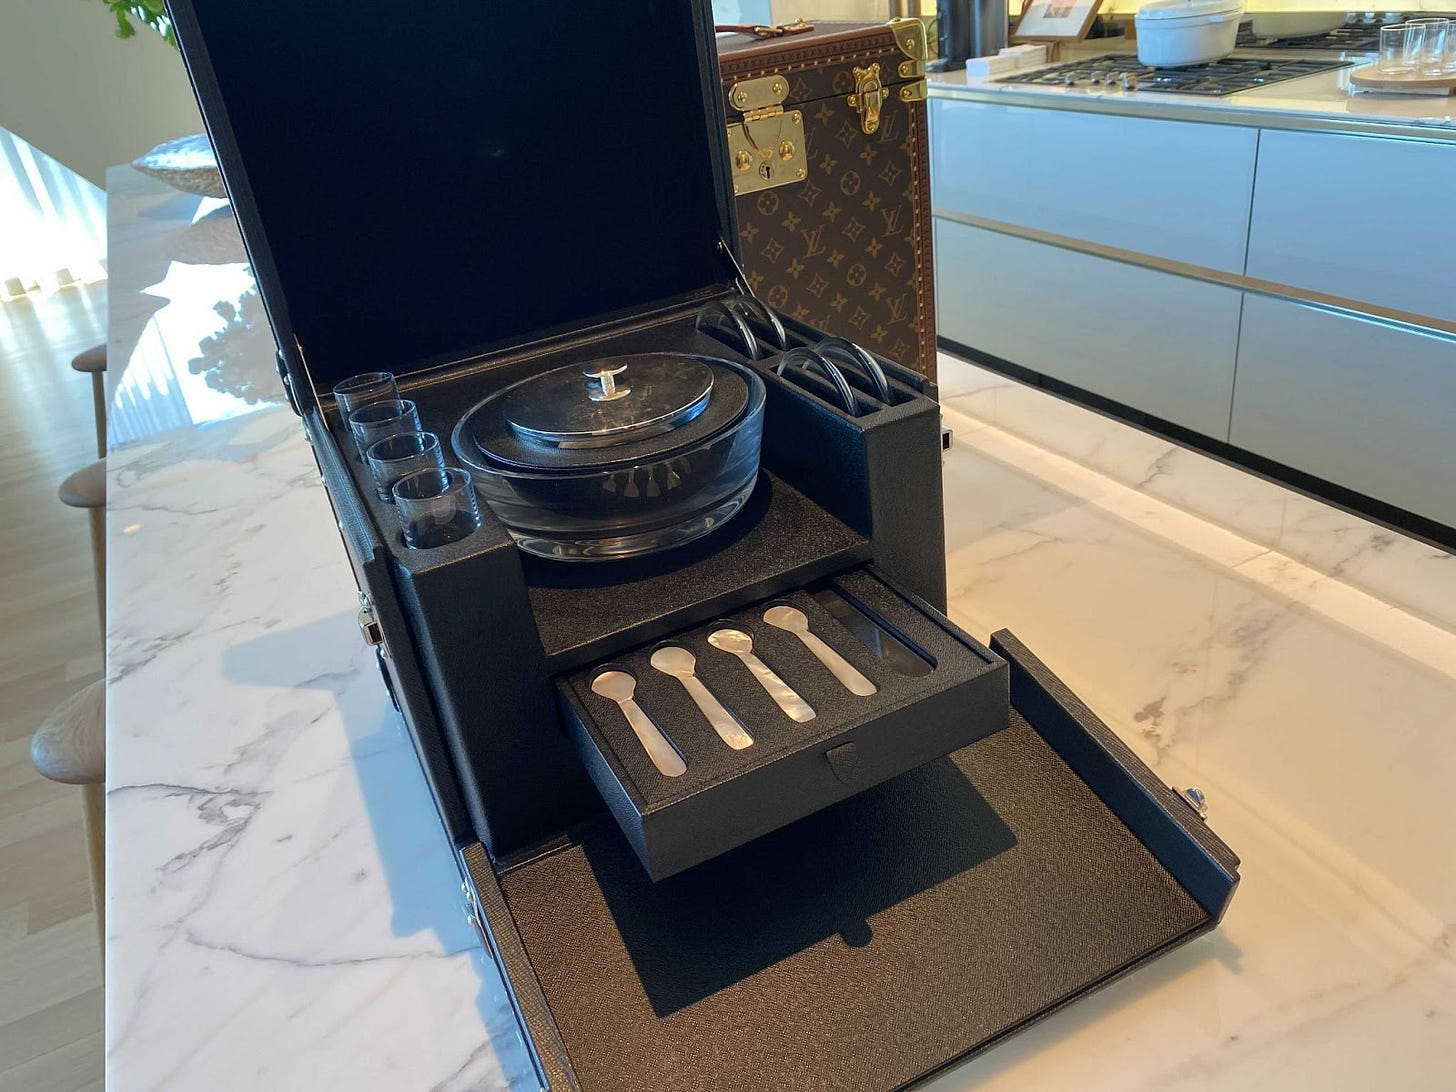 The caviar trunk is a matte black cube, top lid tilted up and front folded down to reveal a drawer of caviar spoons, and a bowl, presumably to hold the caviar. It sits on a shiny marble countertop and looks insanely wealthy.